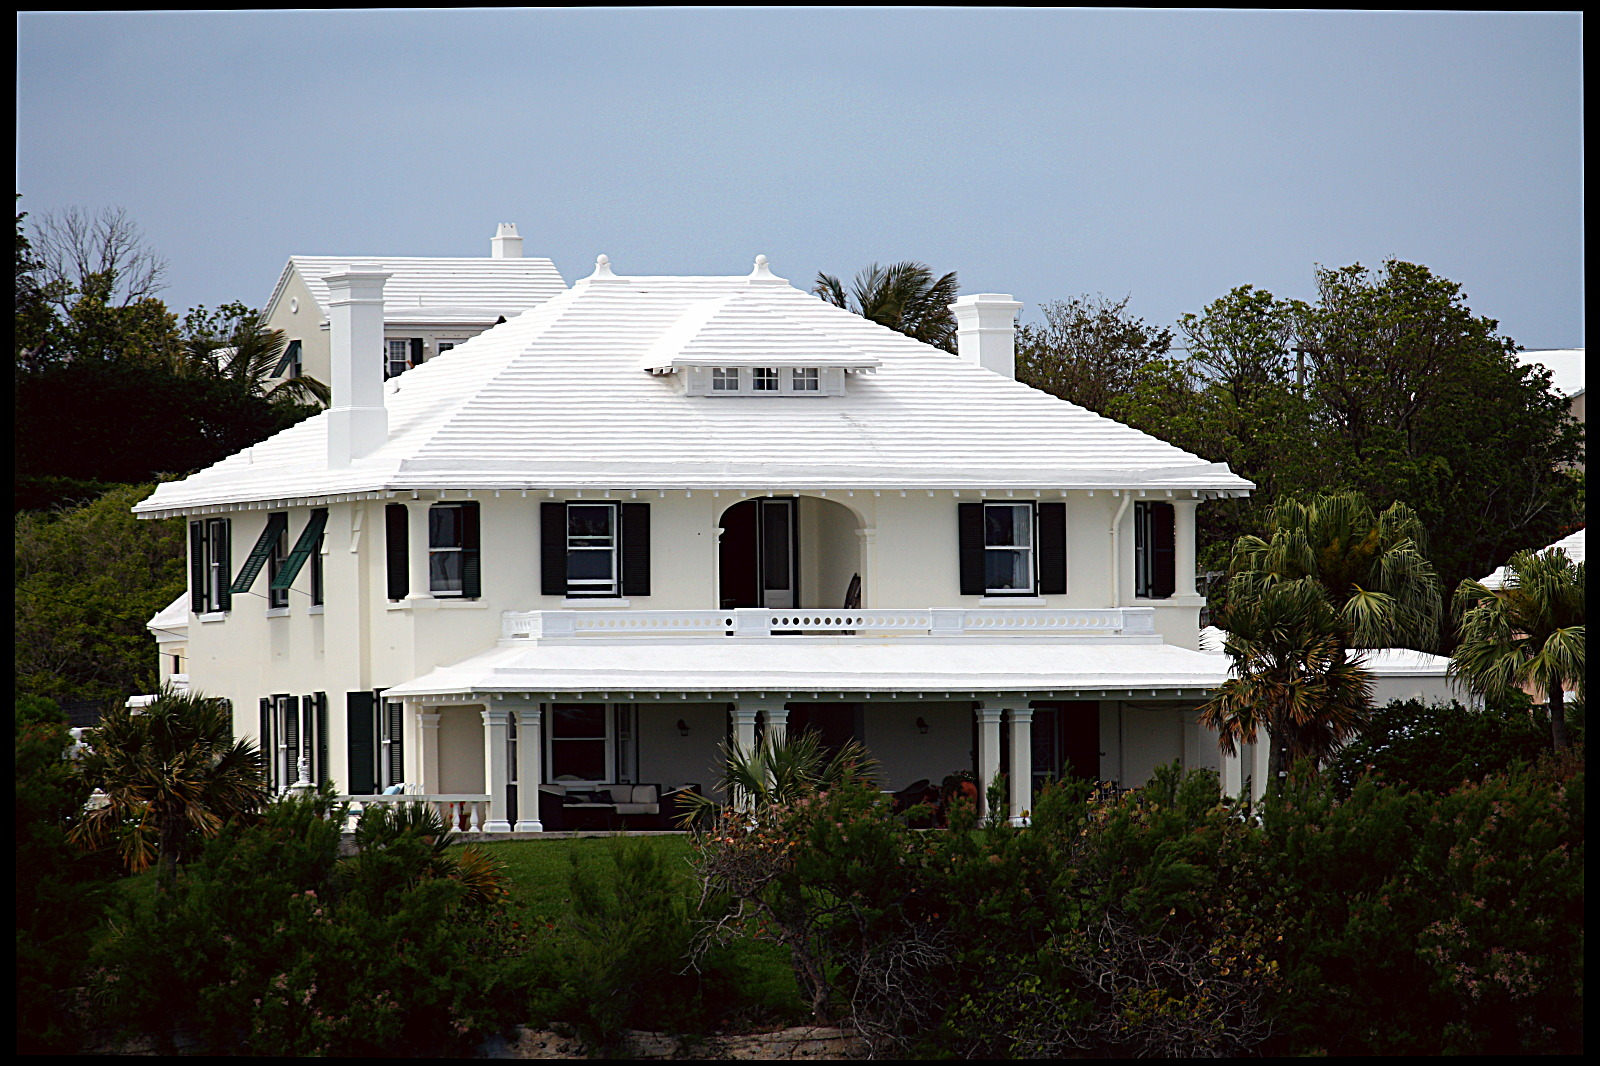 Http Housepeepers Blogspot Com 2010 06 Bermuda Houses Html